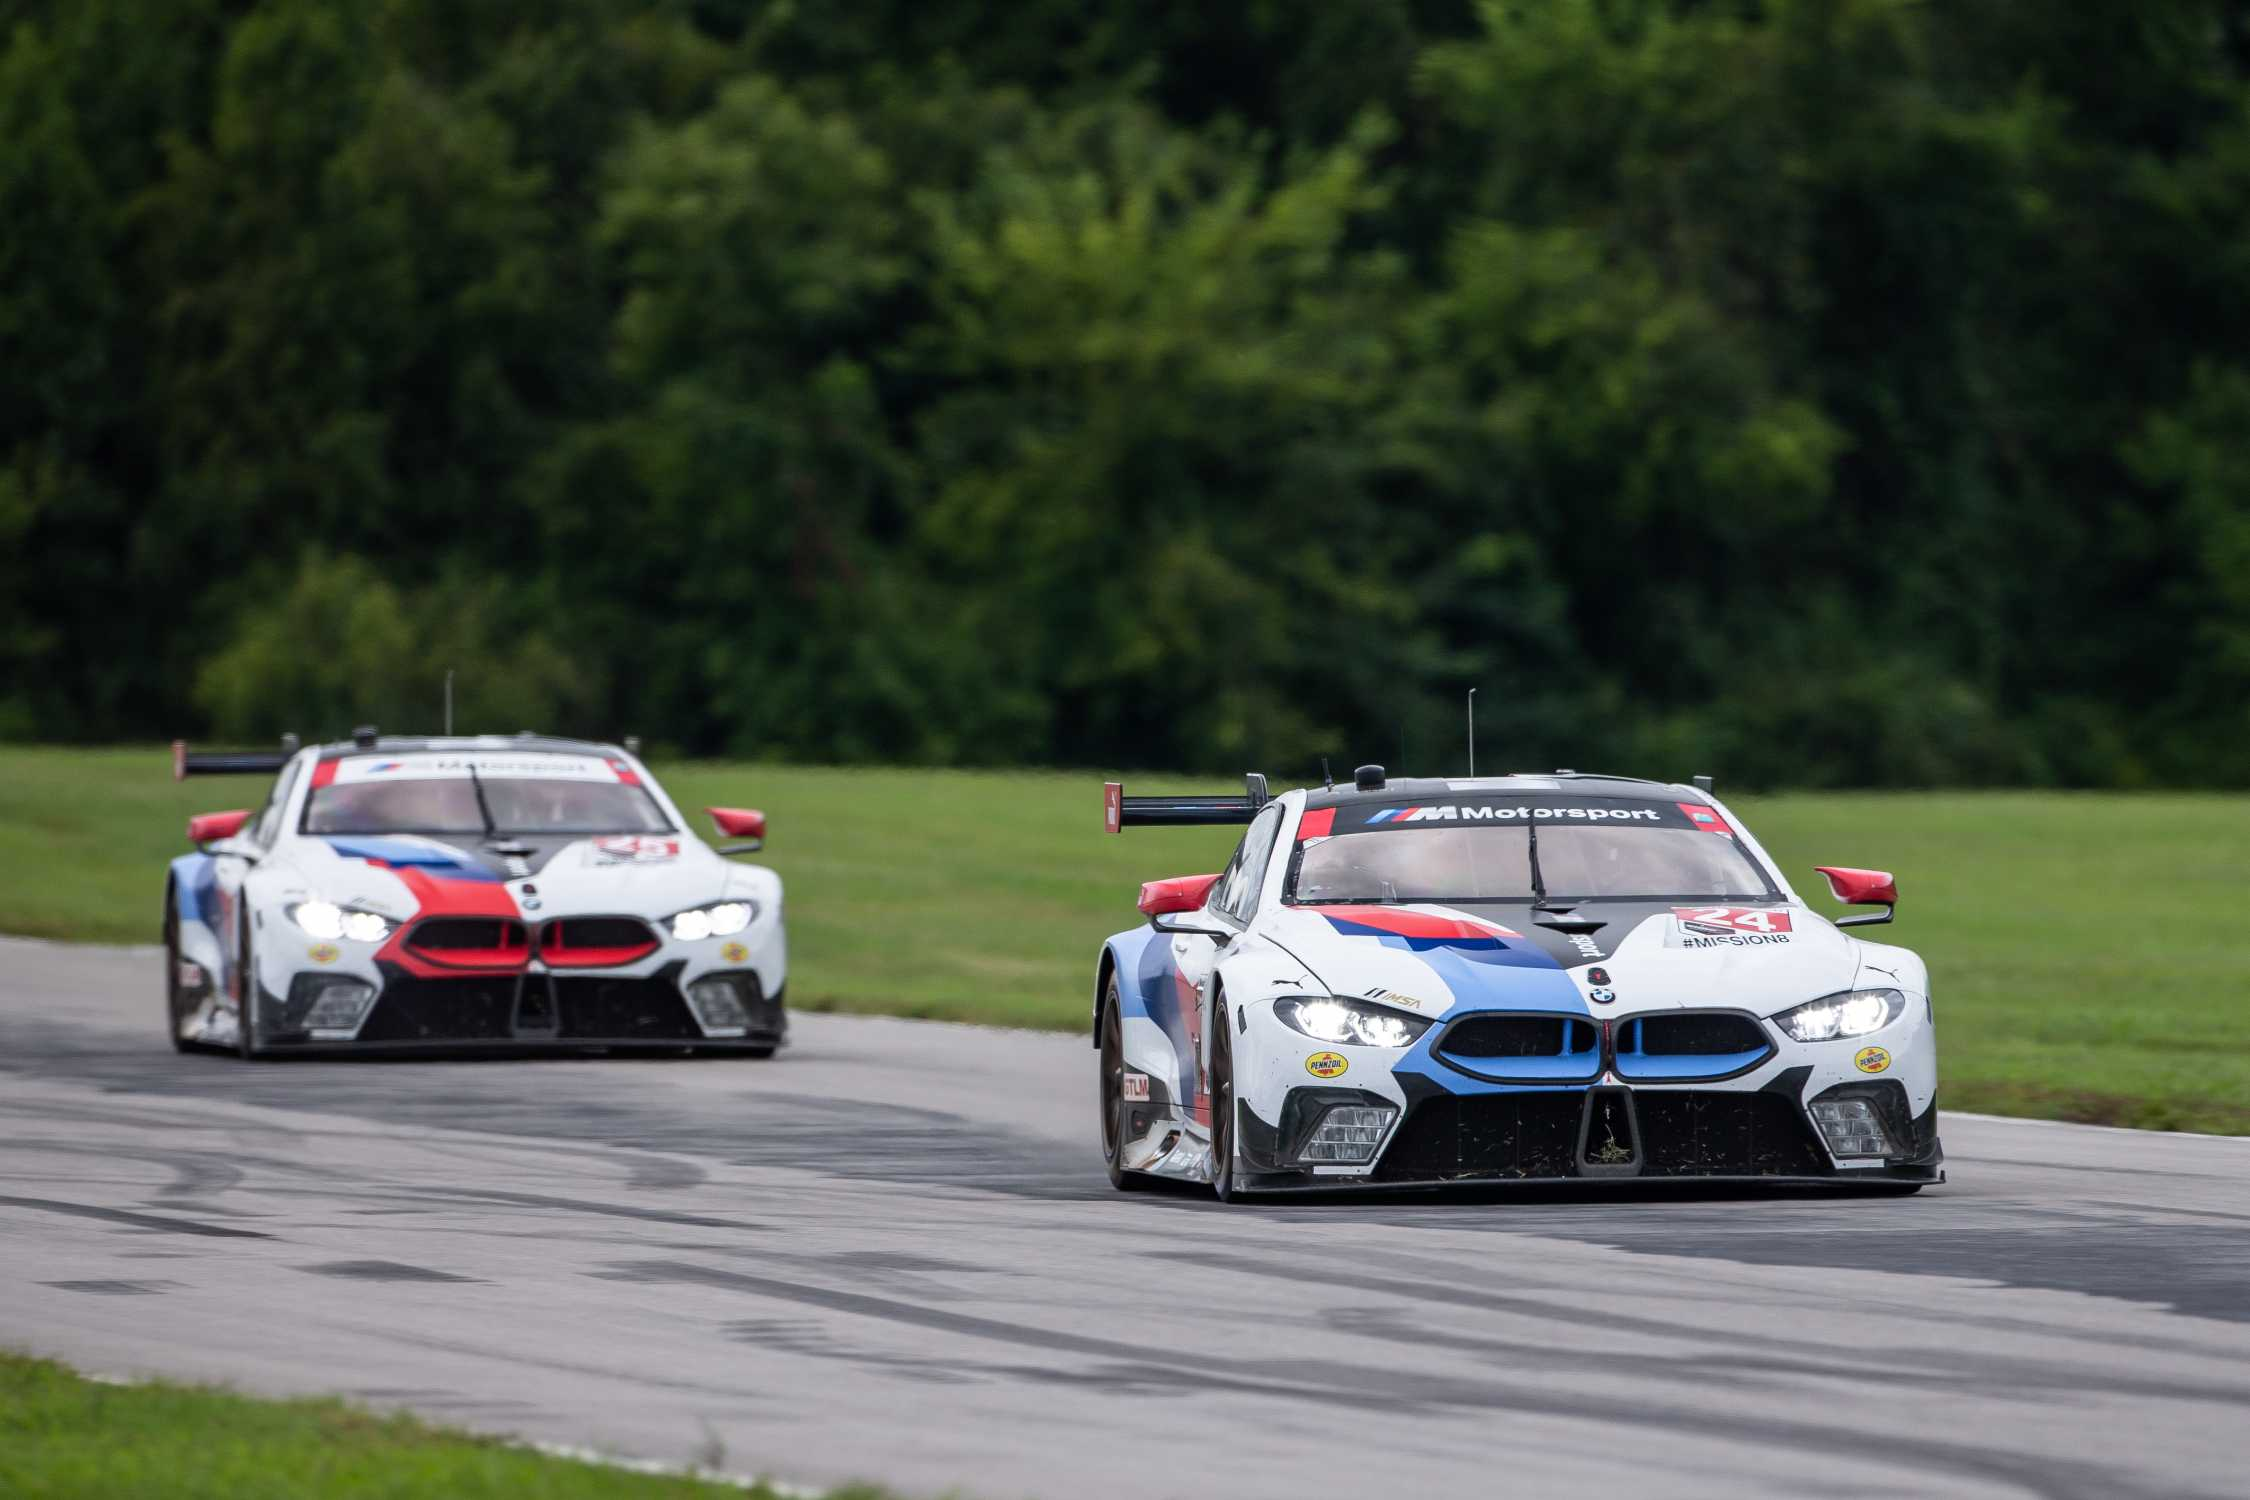 Bmw Team Rll Finishes Seventh And Eighth At Virginia International Raceway